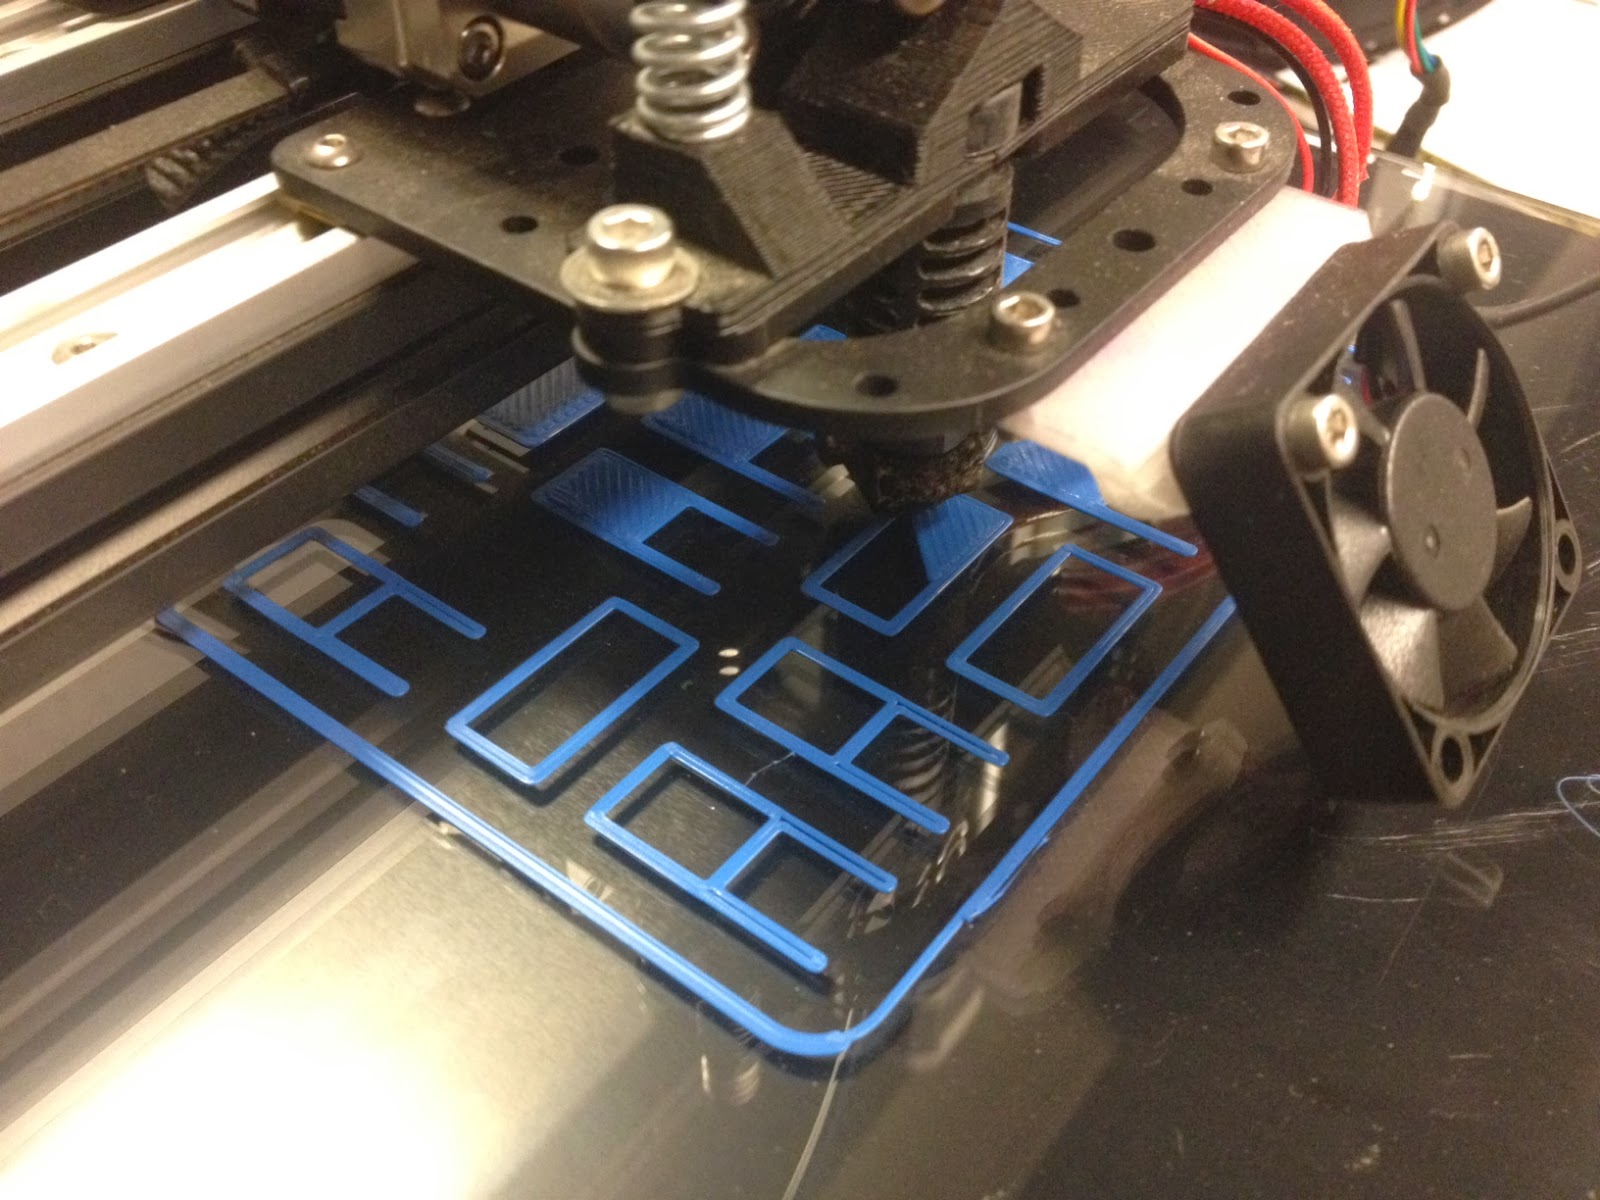 3D printer beginning to print blue plastic miniature chair models.